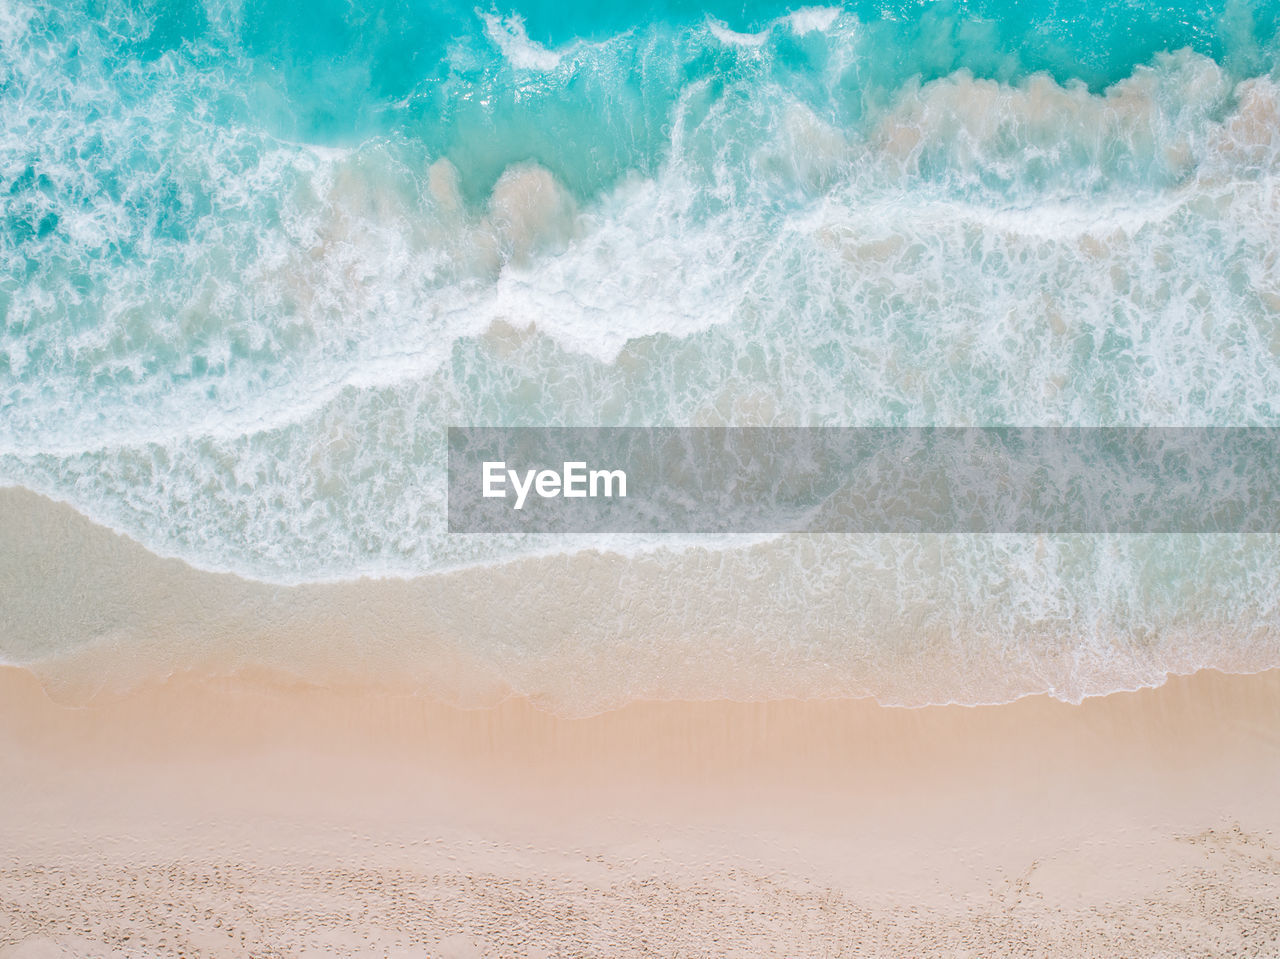 sea, land, water, beauty in nature, wave, motion, nature, surfing, sport, scenics - nature, aquatic sport, beach, day, sand, outdoors, tranquility, environment, power in nature